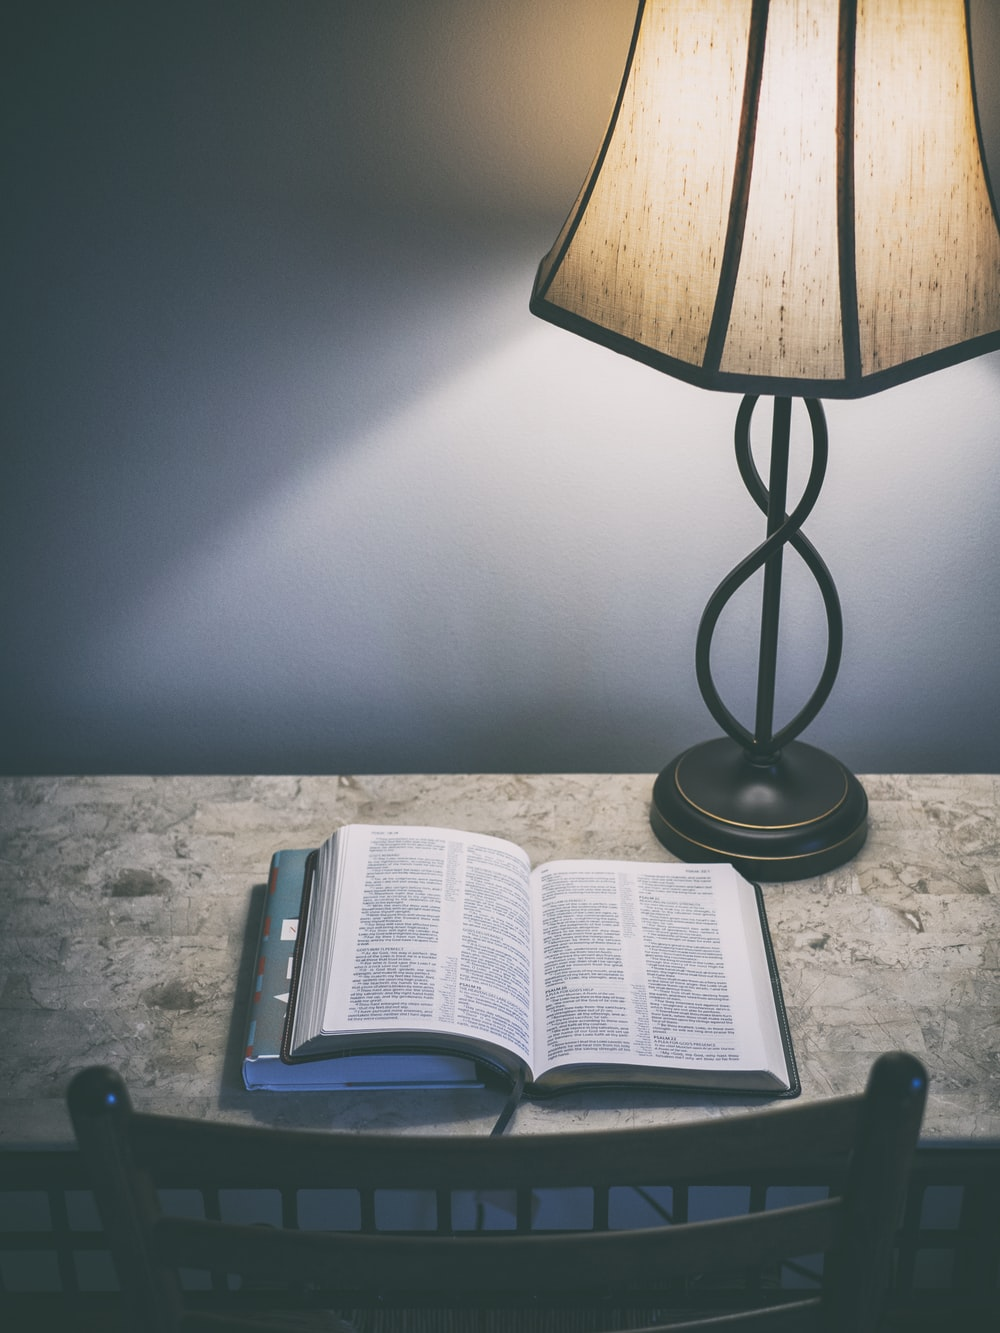 book beside the table lamp